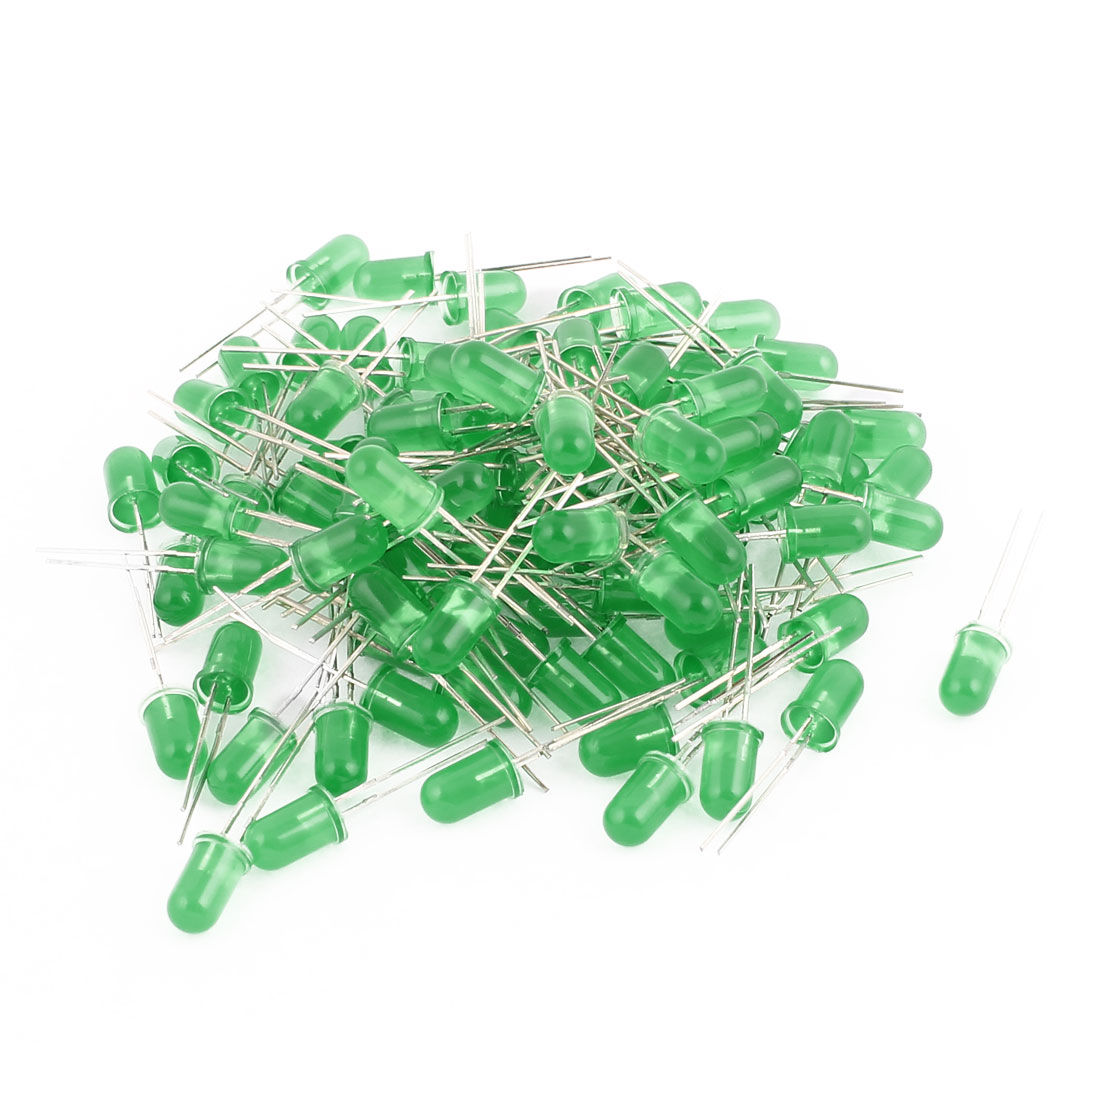 100 pcs Round F5 Green Bulb 2 Terminal Green Light Emitting Diode for LED Lamp